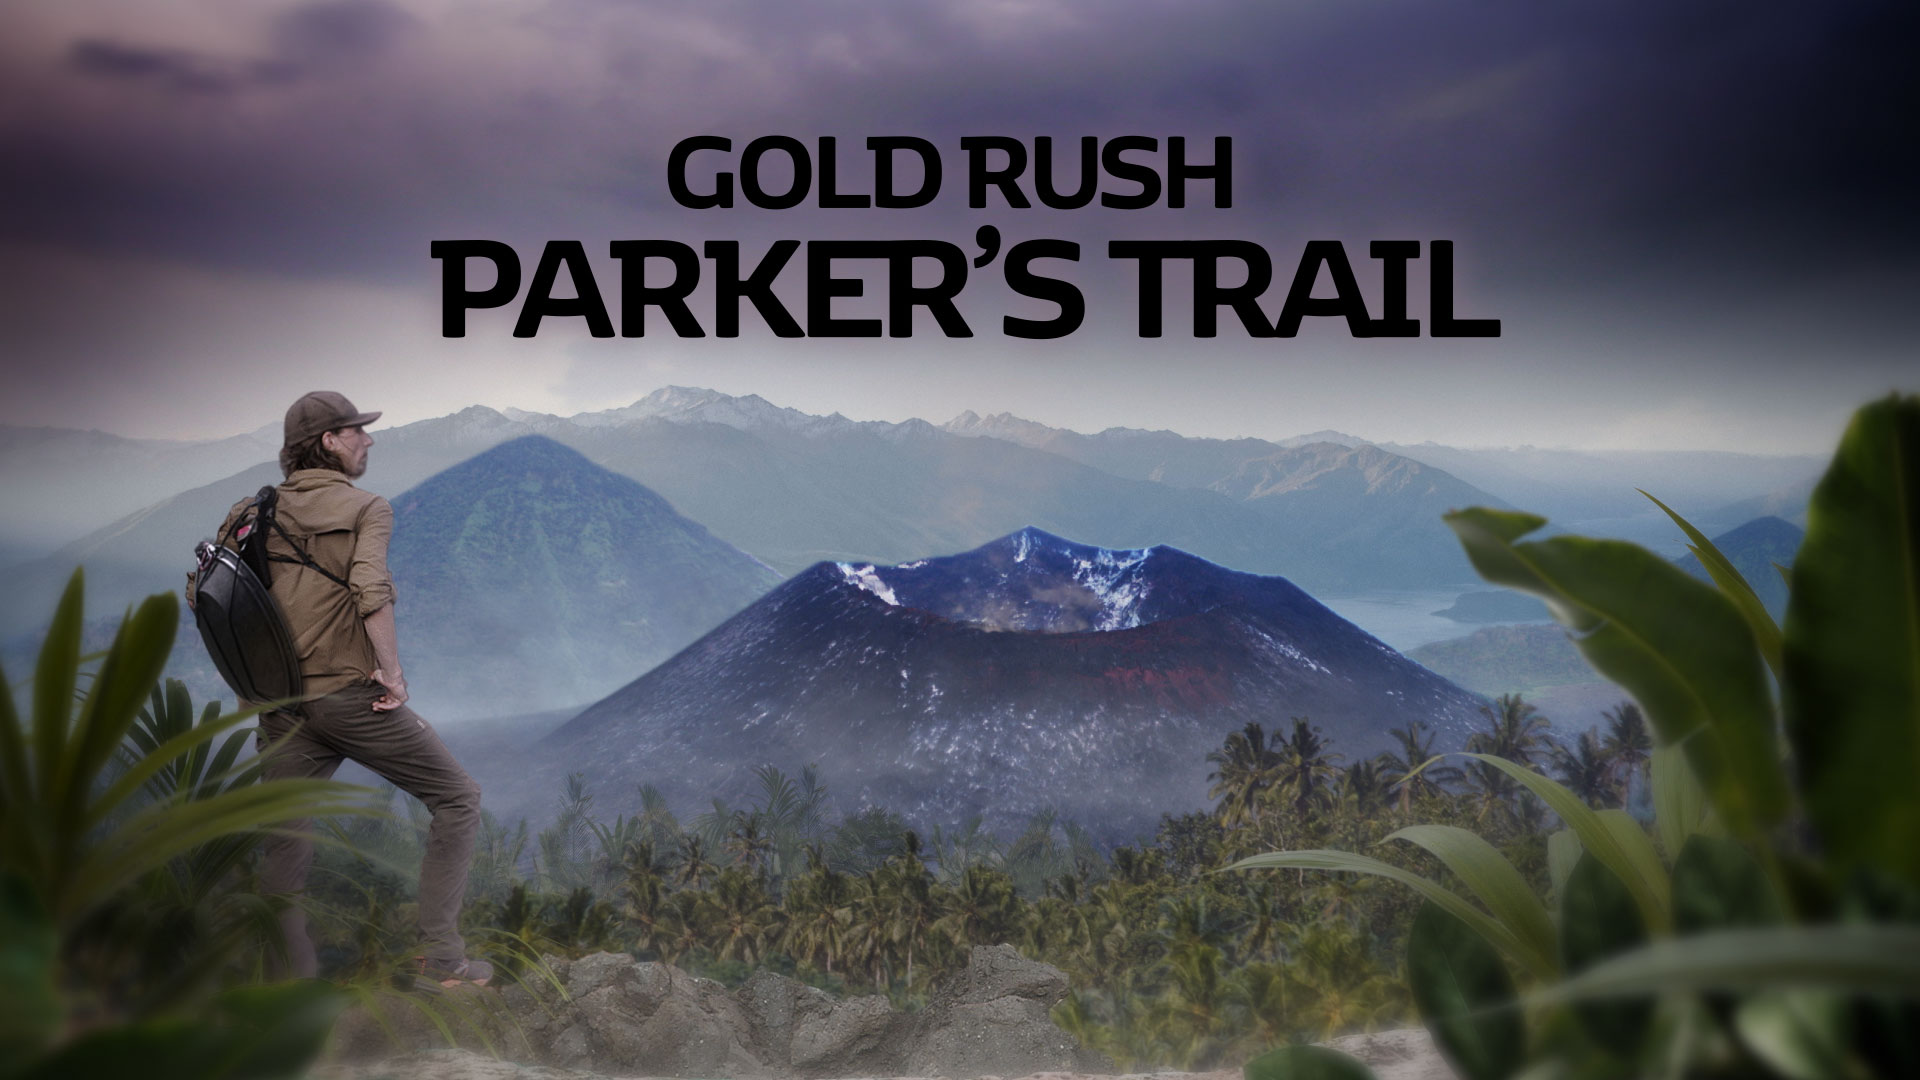 Parker's Trail Gold Rush Series 3: Papua New Guinea Discovery © Holey and Moley Ltd